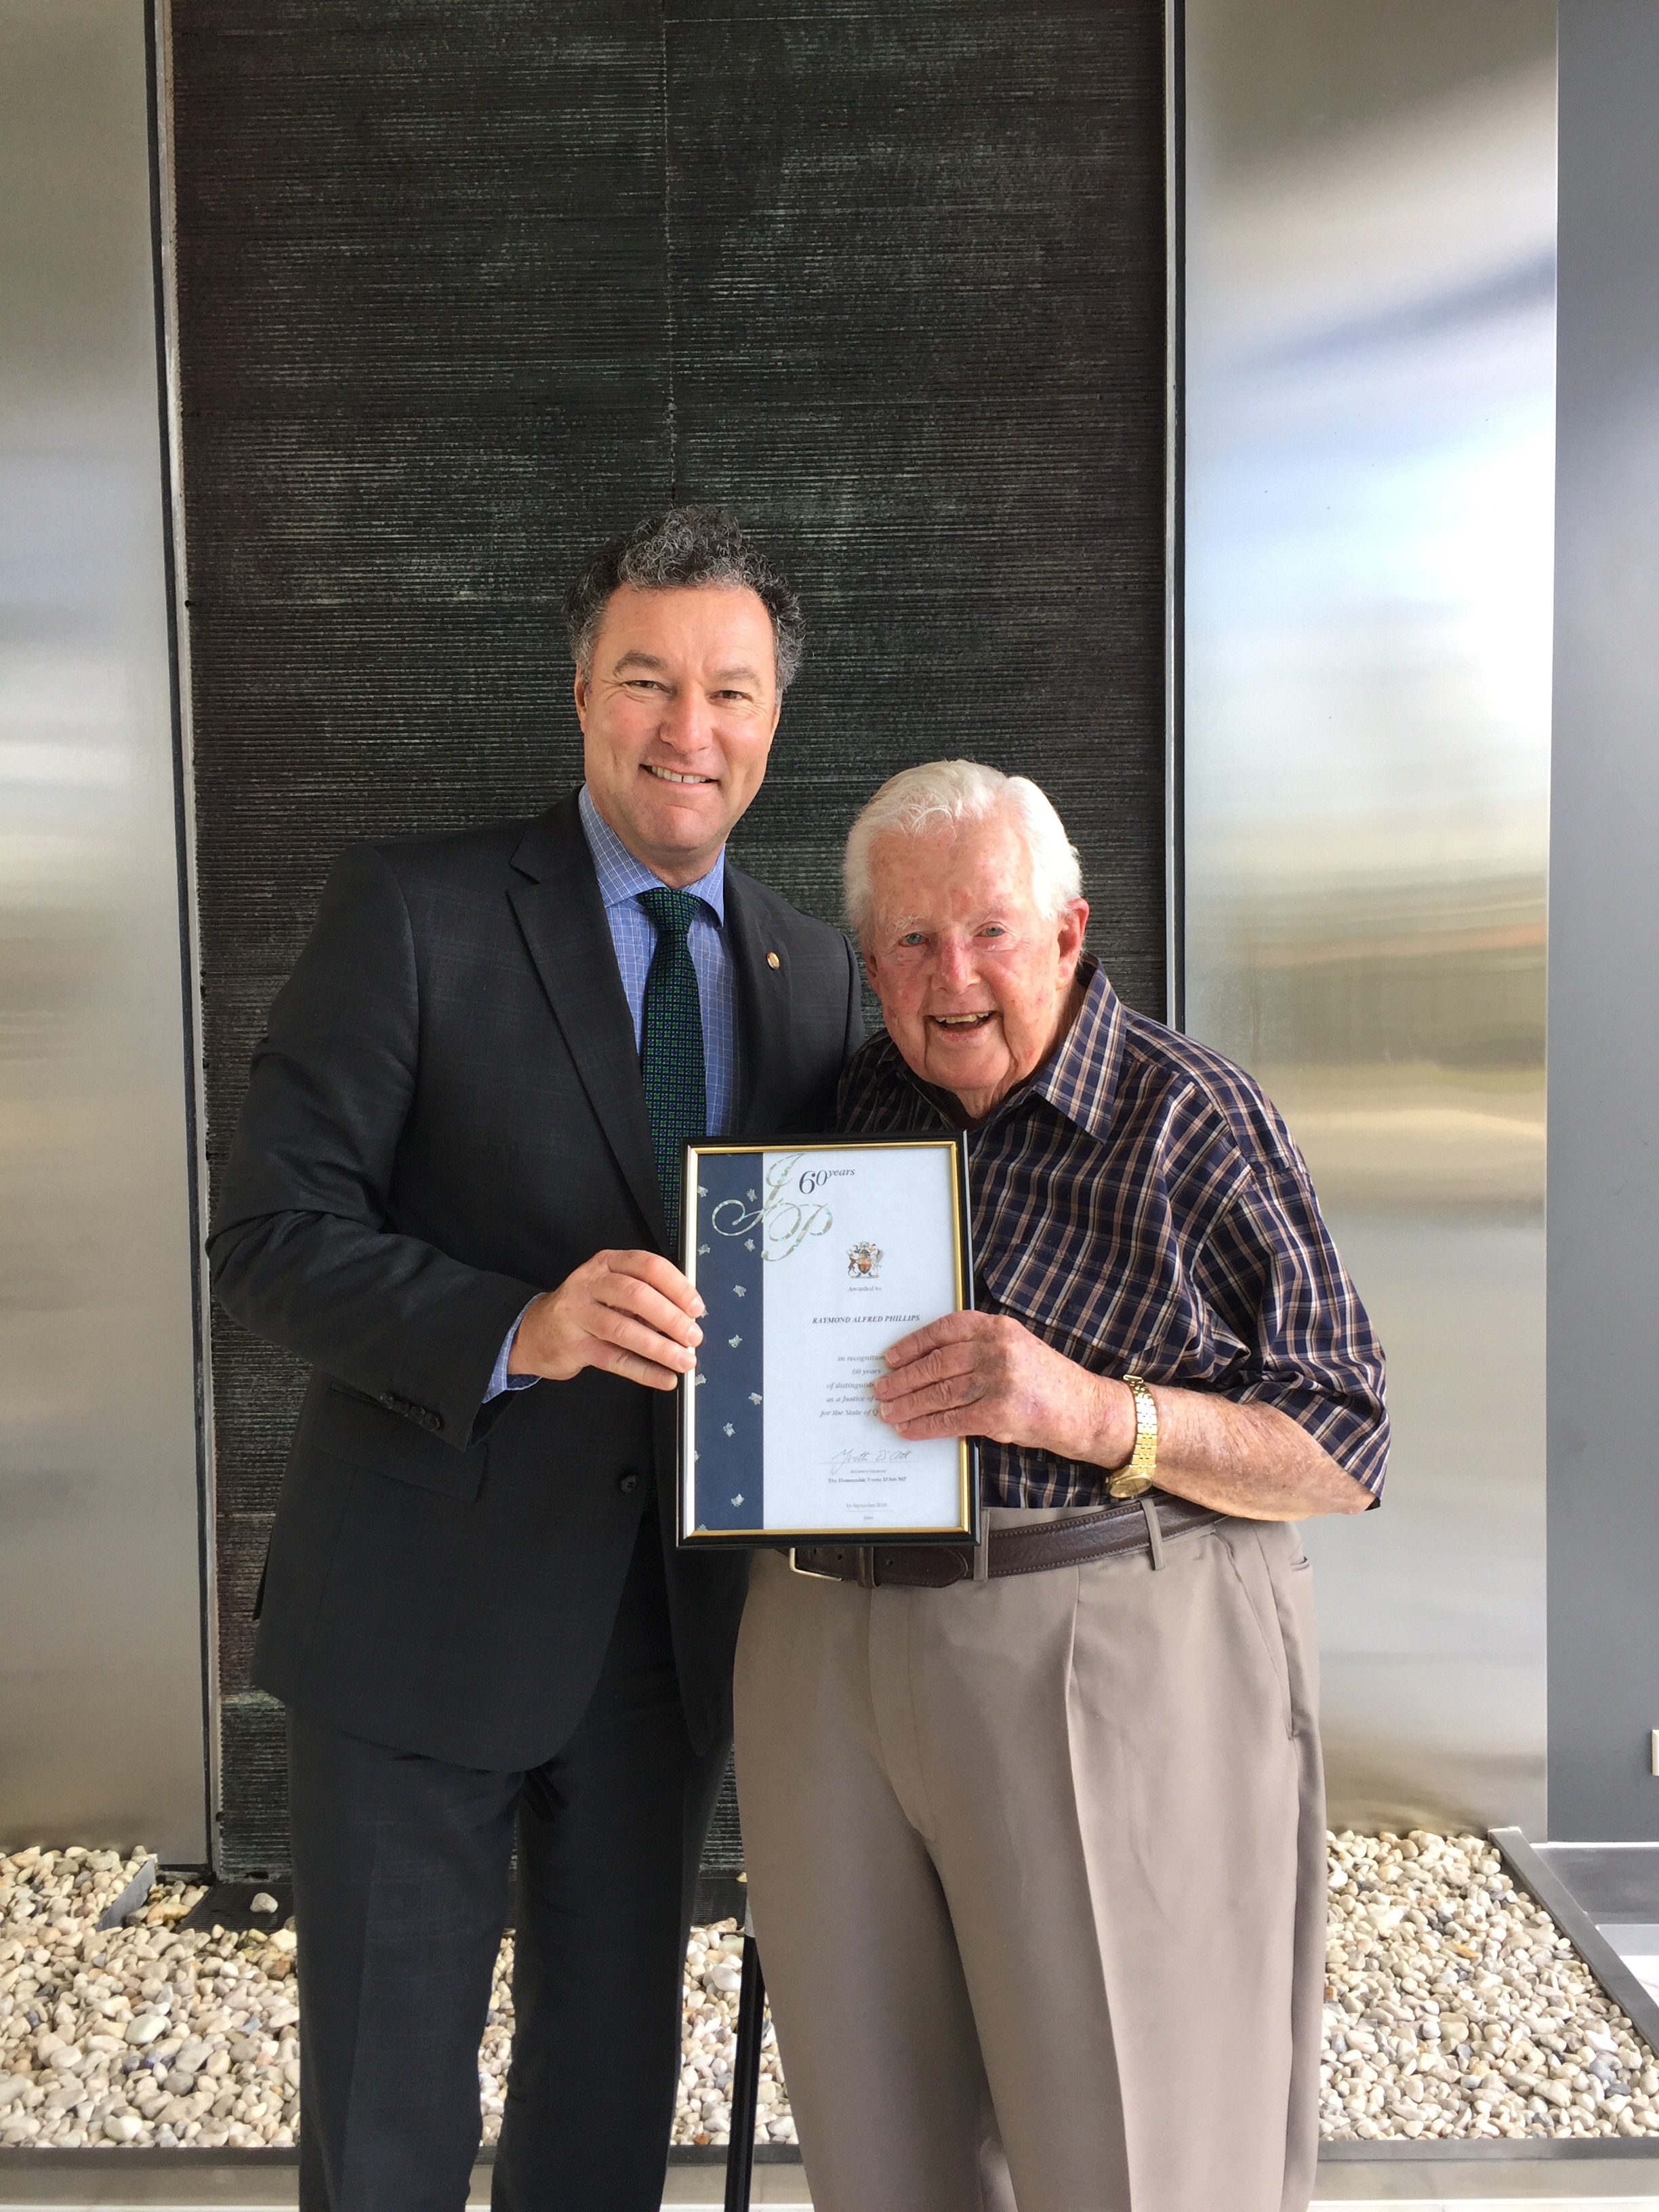 Congratulations to Ray who has served as a Justice of the Peace for over 60 years!